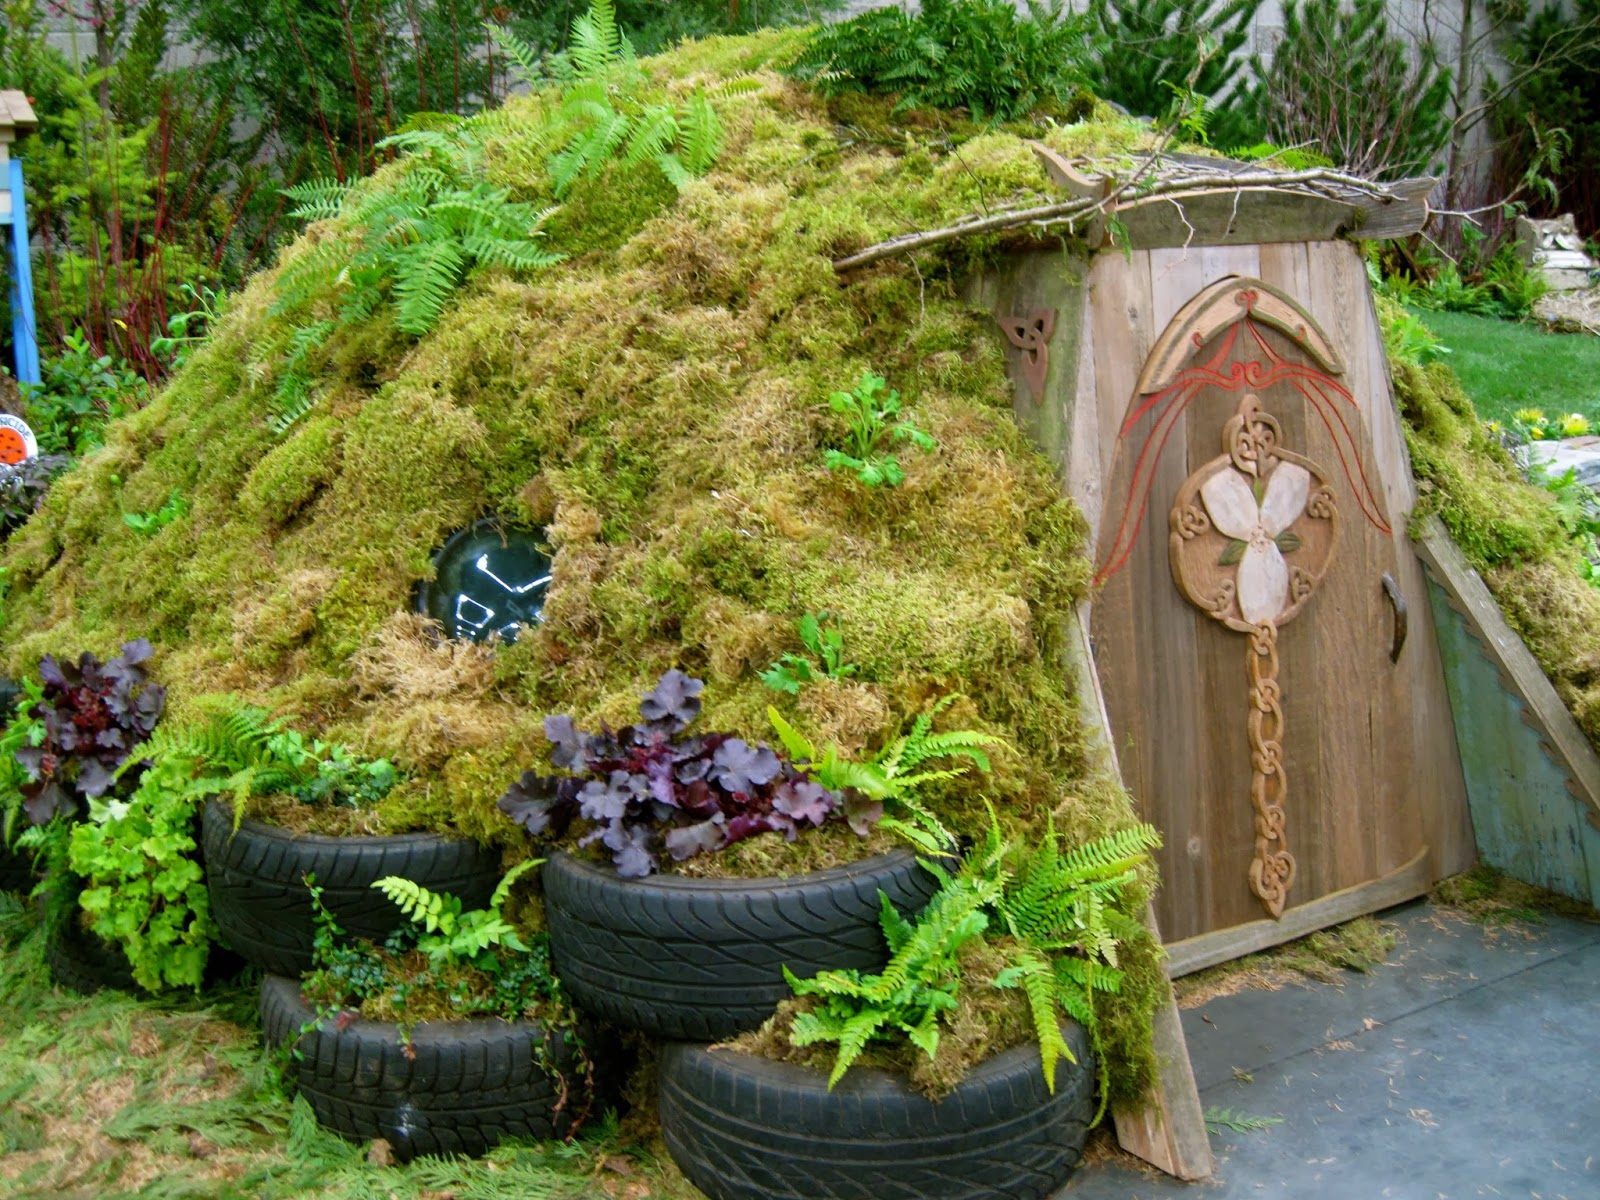 A Cute Hobbit House, Covered In Moss And Ferns And Poppies, But The Tires  Seem Out Of Place, Like They Wandered In From A Different Garden.